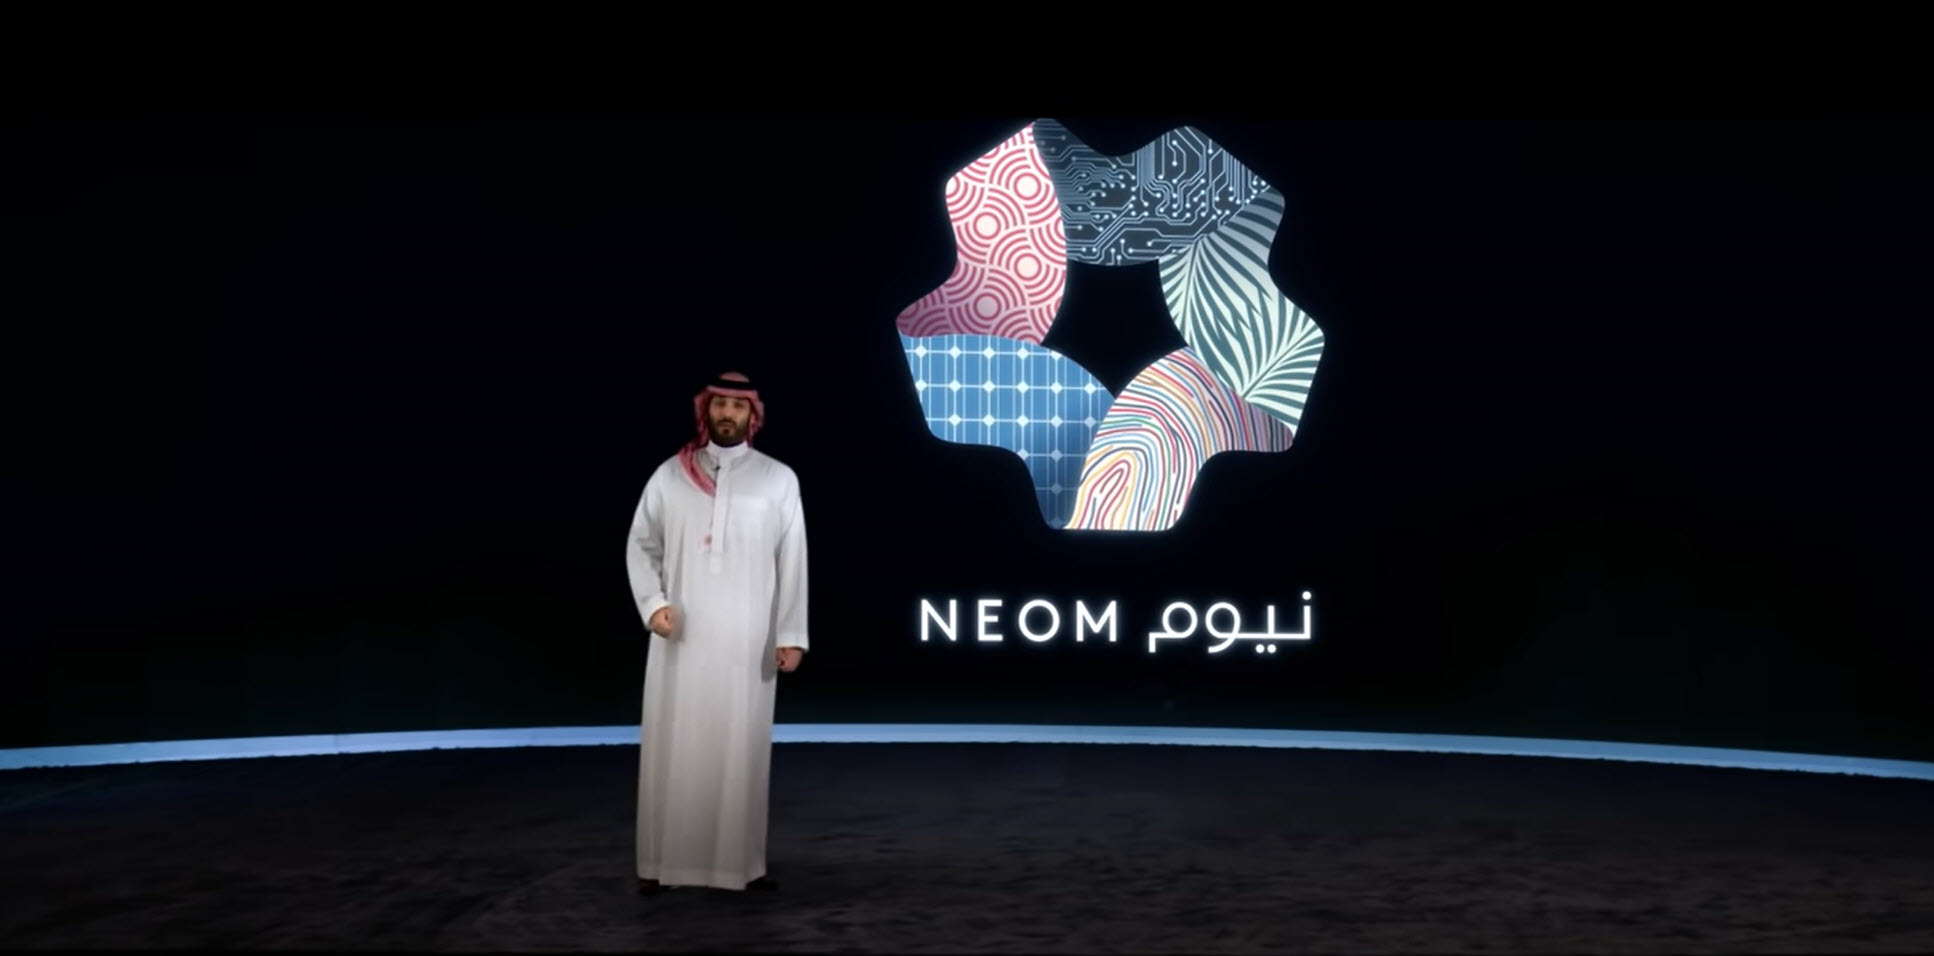 HRH Crown Prince Mohammed bin Salman, chairman of the NEOM Company board of directors, announces THE LINE at NEOM.